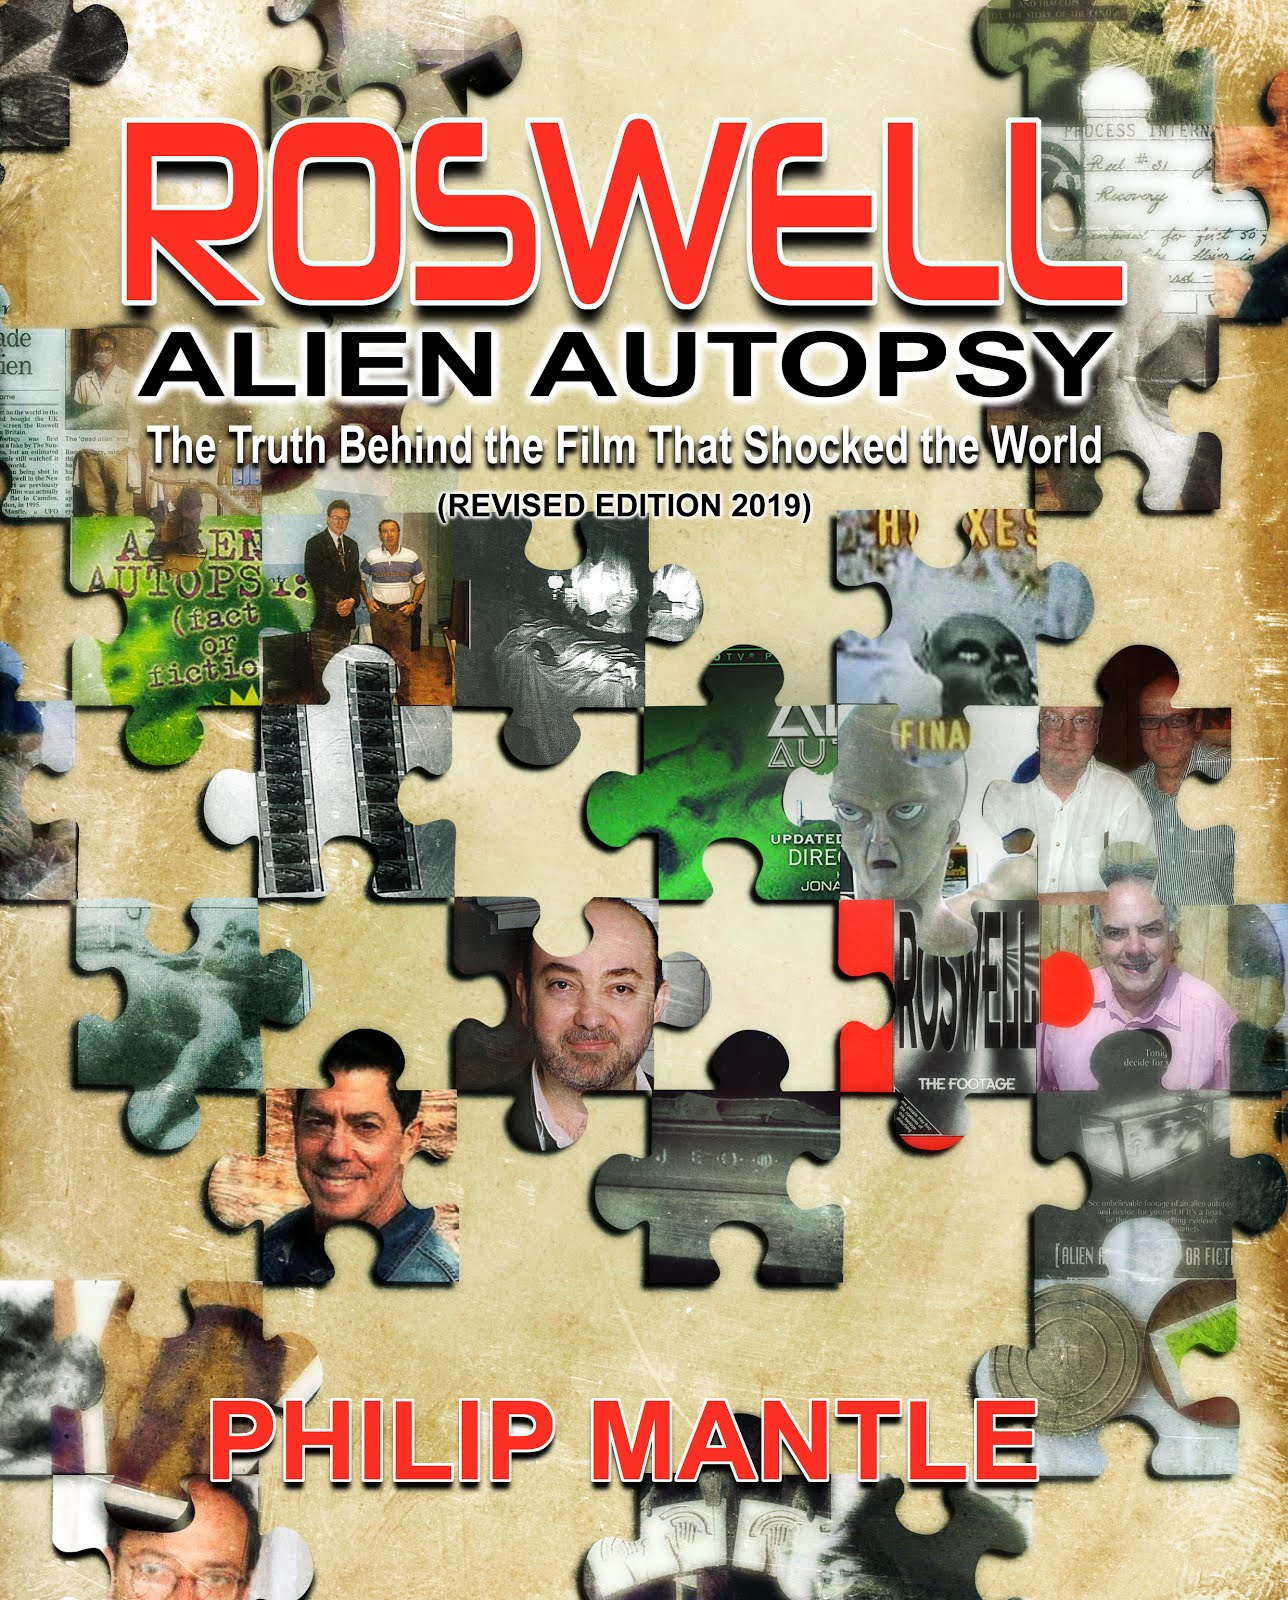 ROSWELL ALIEN AUTOPSY (Revised Edition)